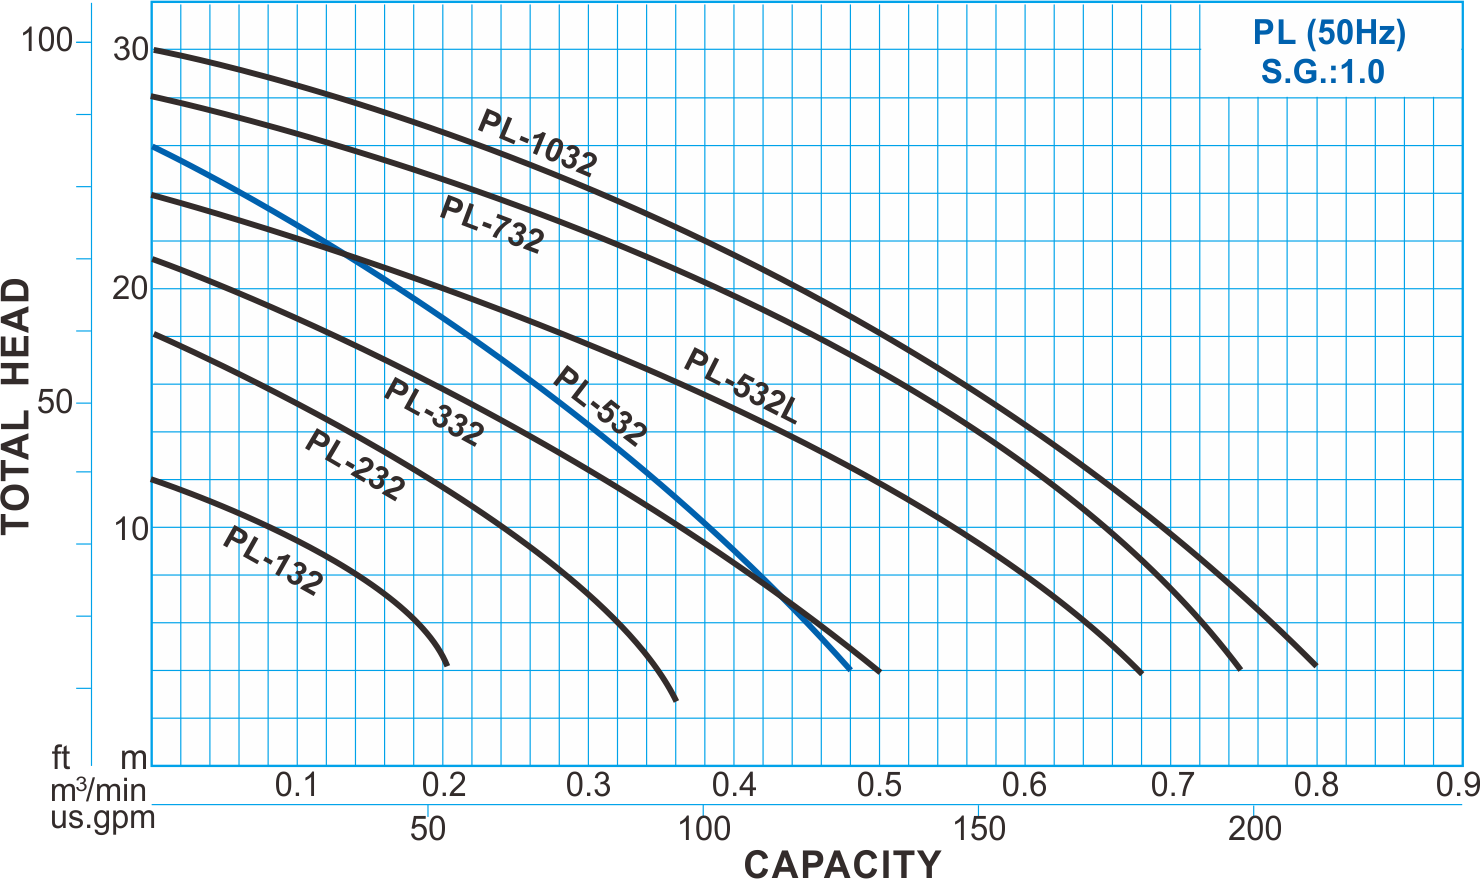 PL type FRPP chemical pump - 50hz performance curve